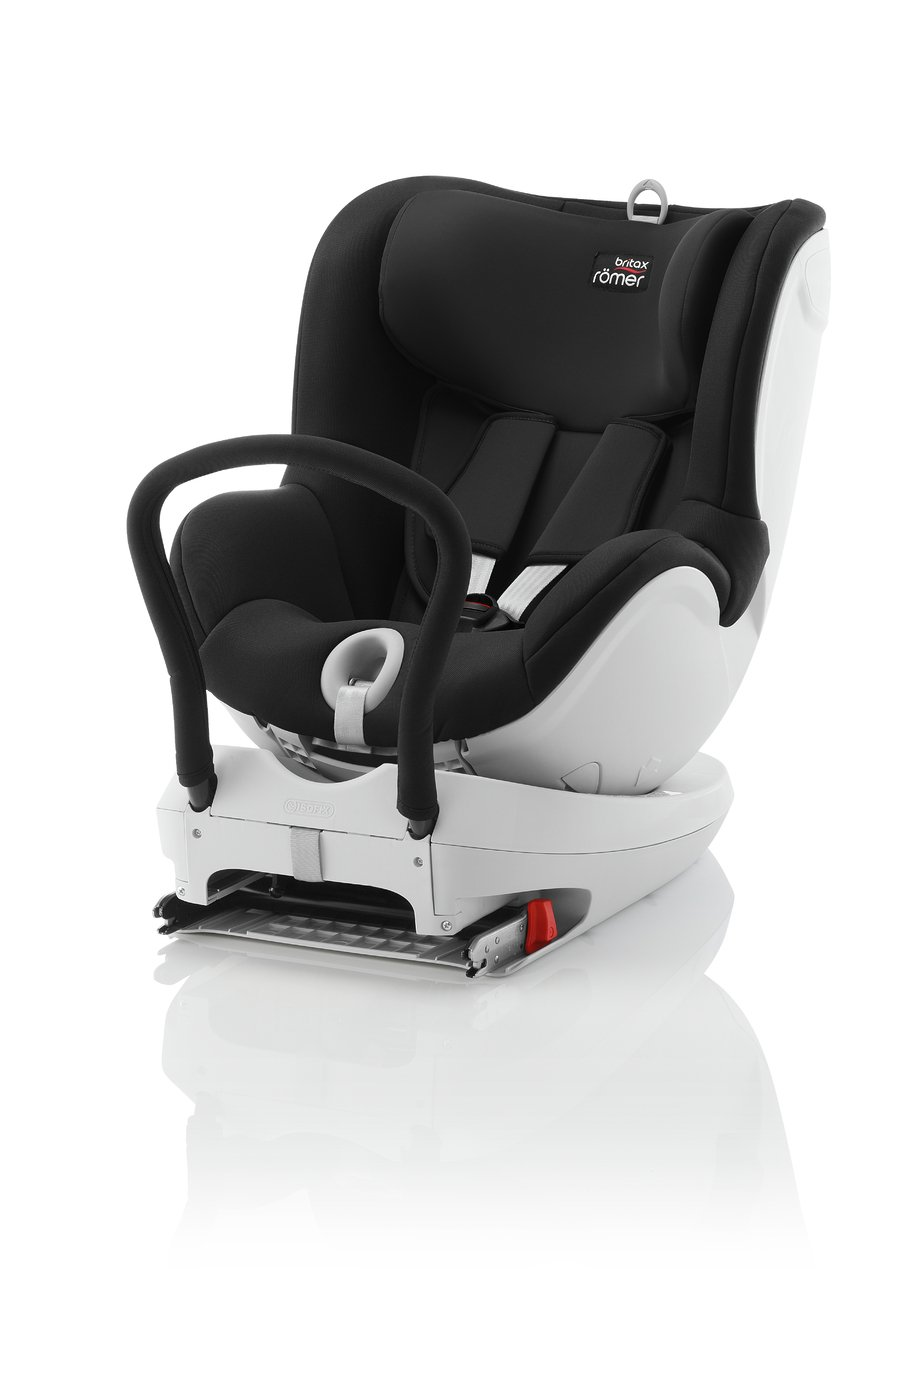 car seats page 2 argos price tracker. Black Bedroom Furniture Sets. Home Design Ideas